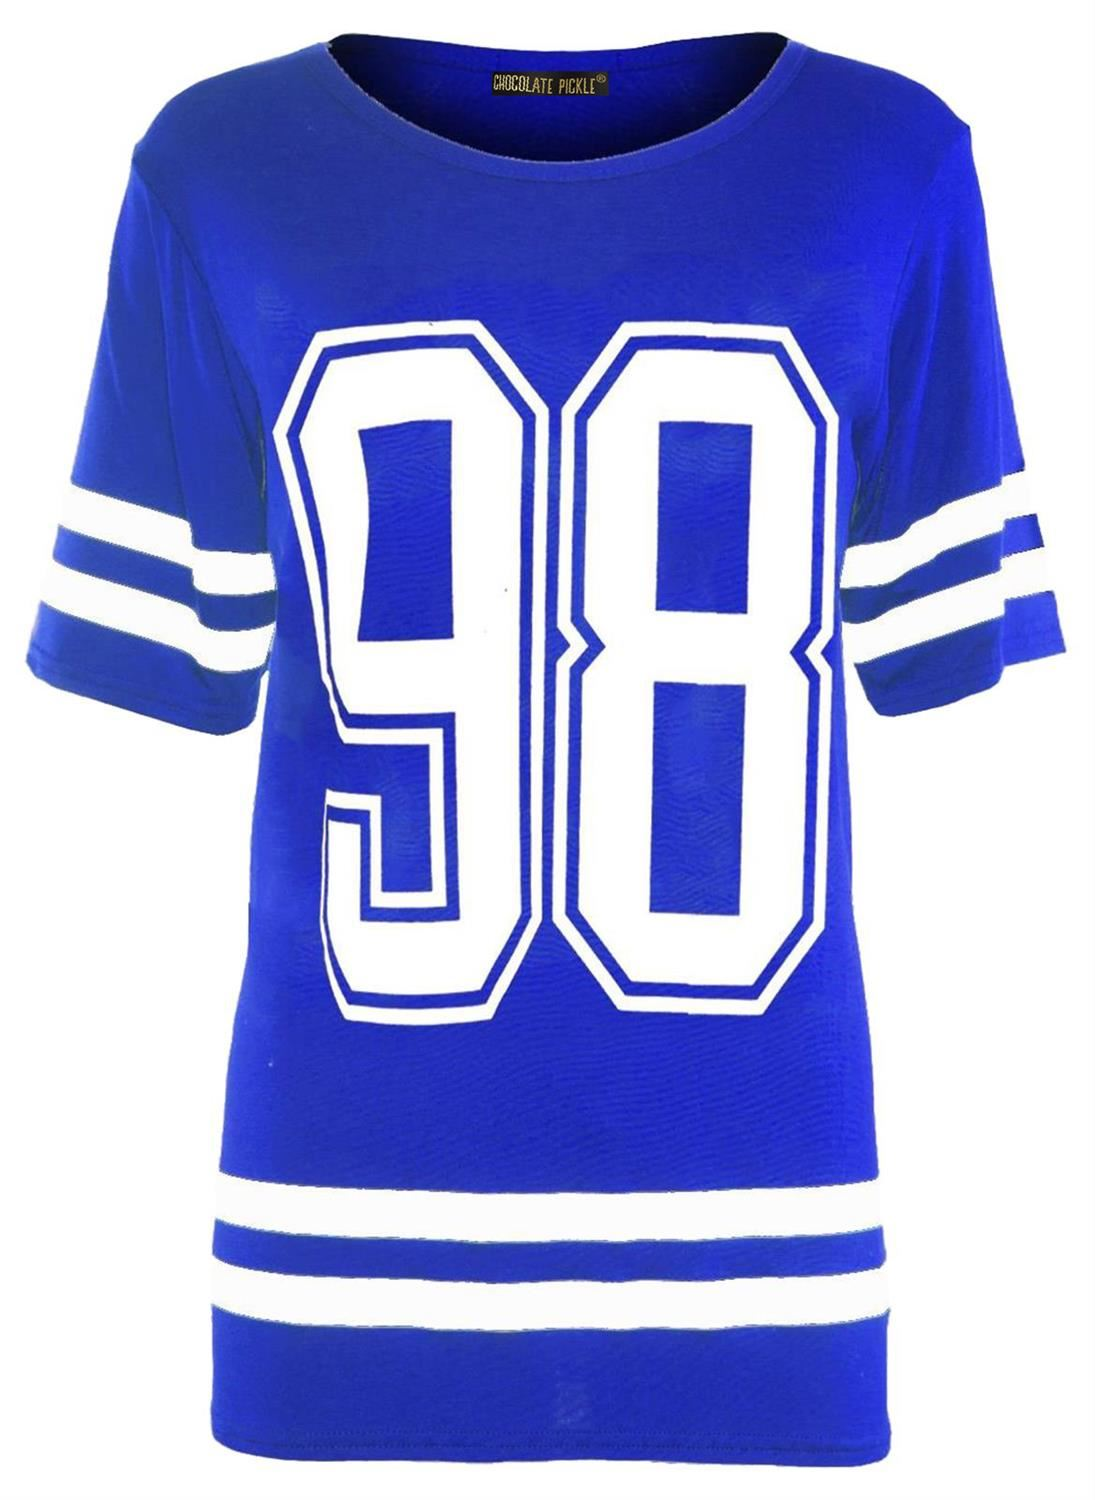 New-Womens-Plus-Size-Number-Printed-Royal-Blue-Varsity-Stripe-T-Shirts-12-26